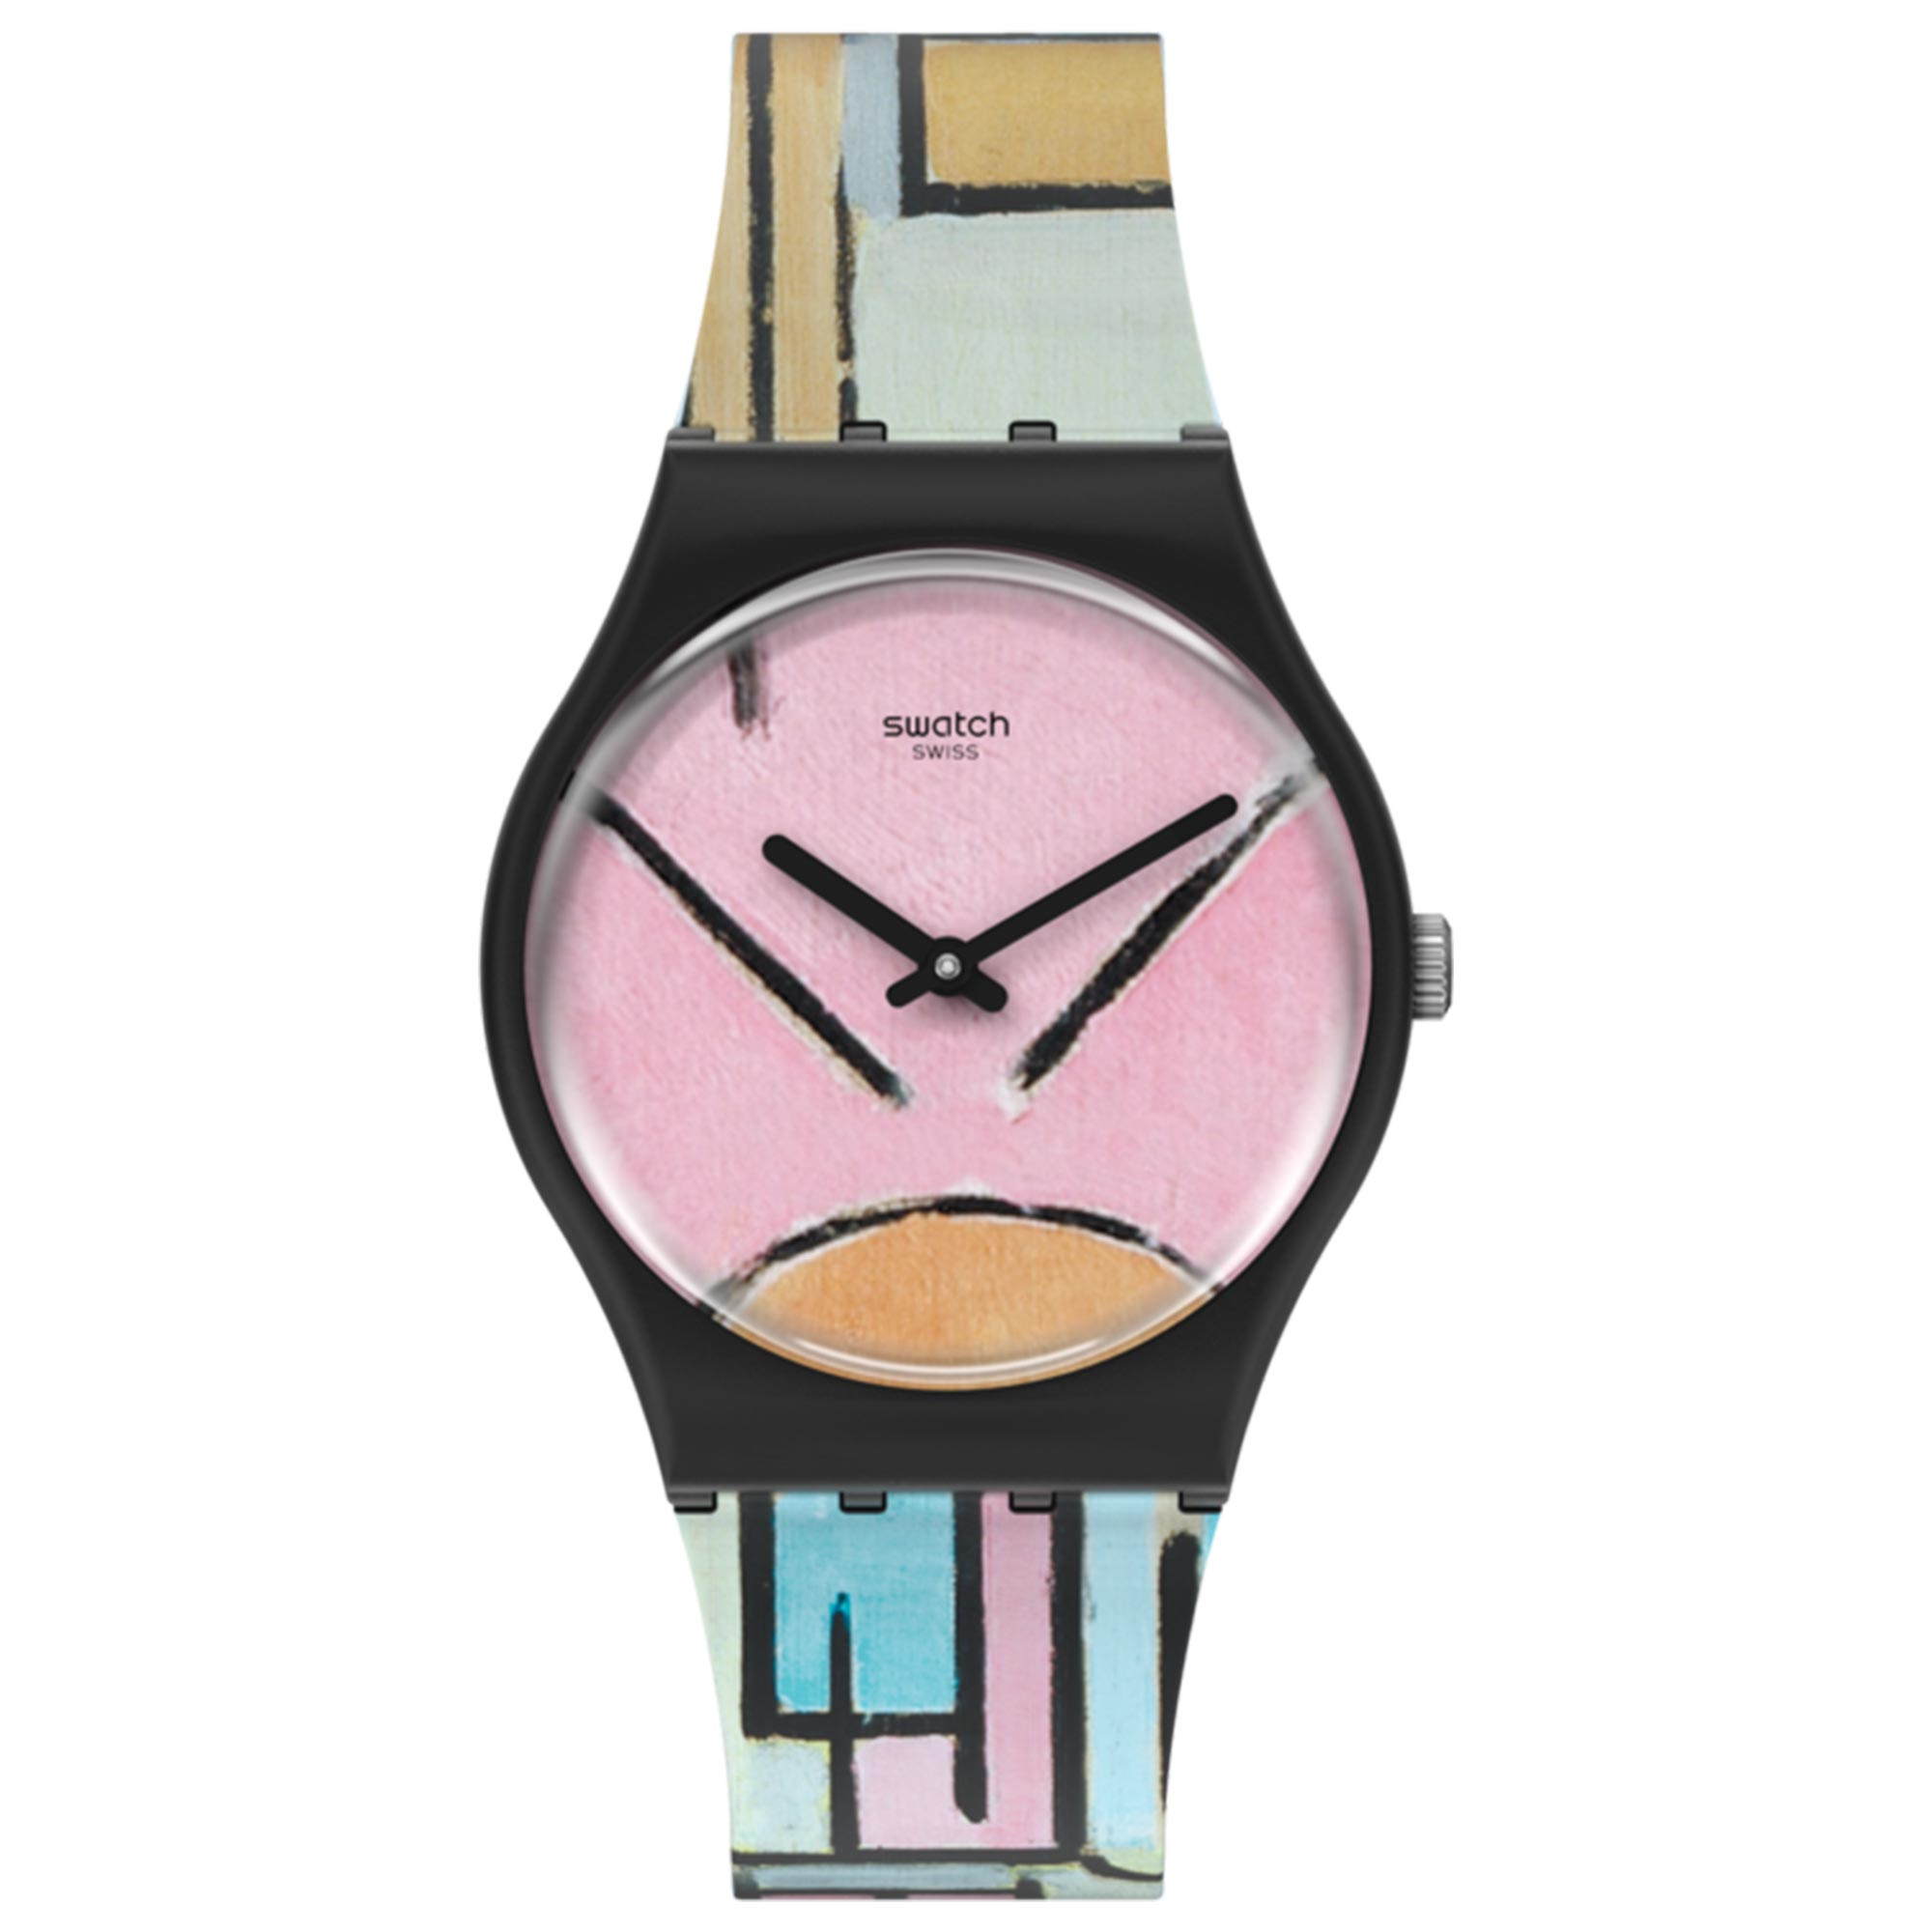 Swatch MoMA Quartz Composition In Oval With Colour Planes 1 Silicone Strap Watch GZ350